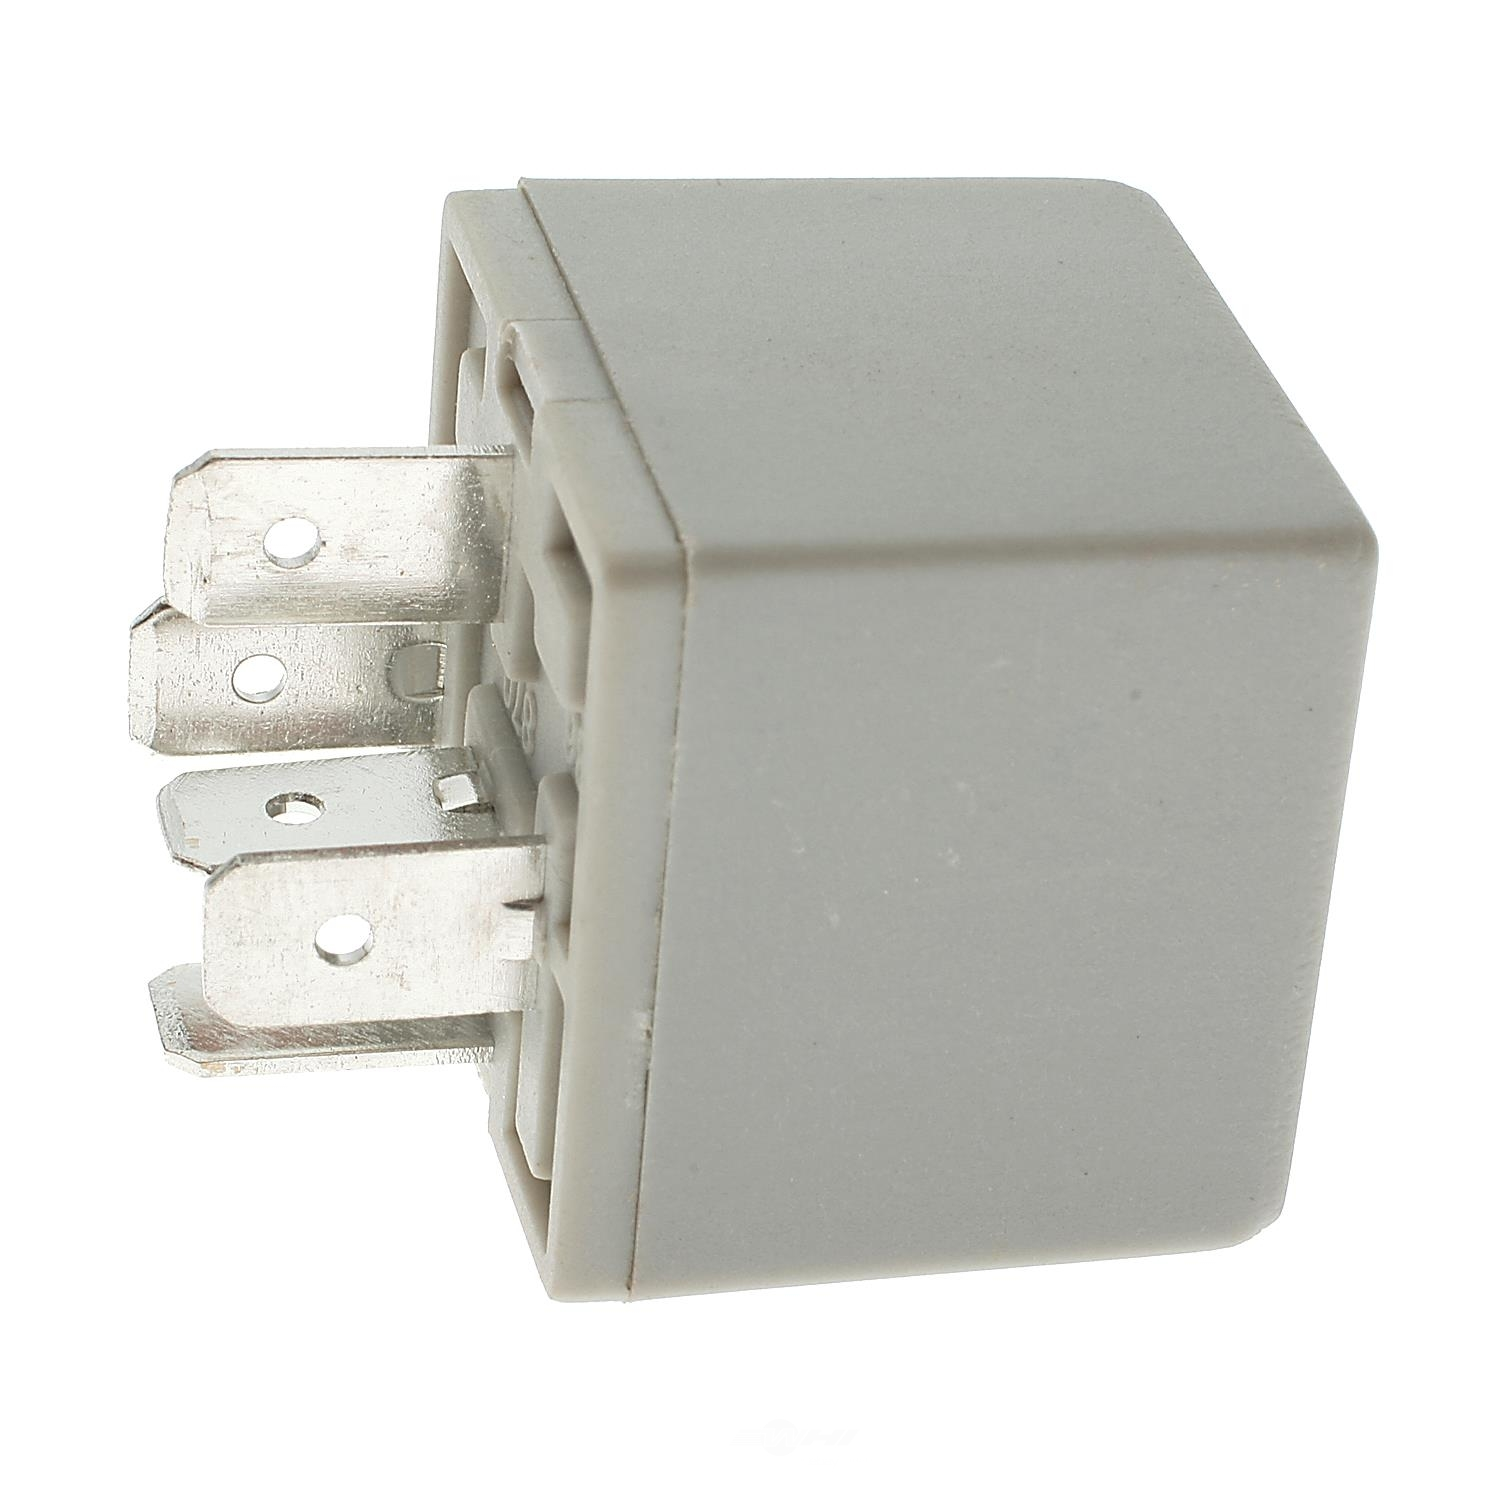 STANDARD T-SERIES - Parking Brake Release Relay - STT RY116T